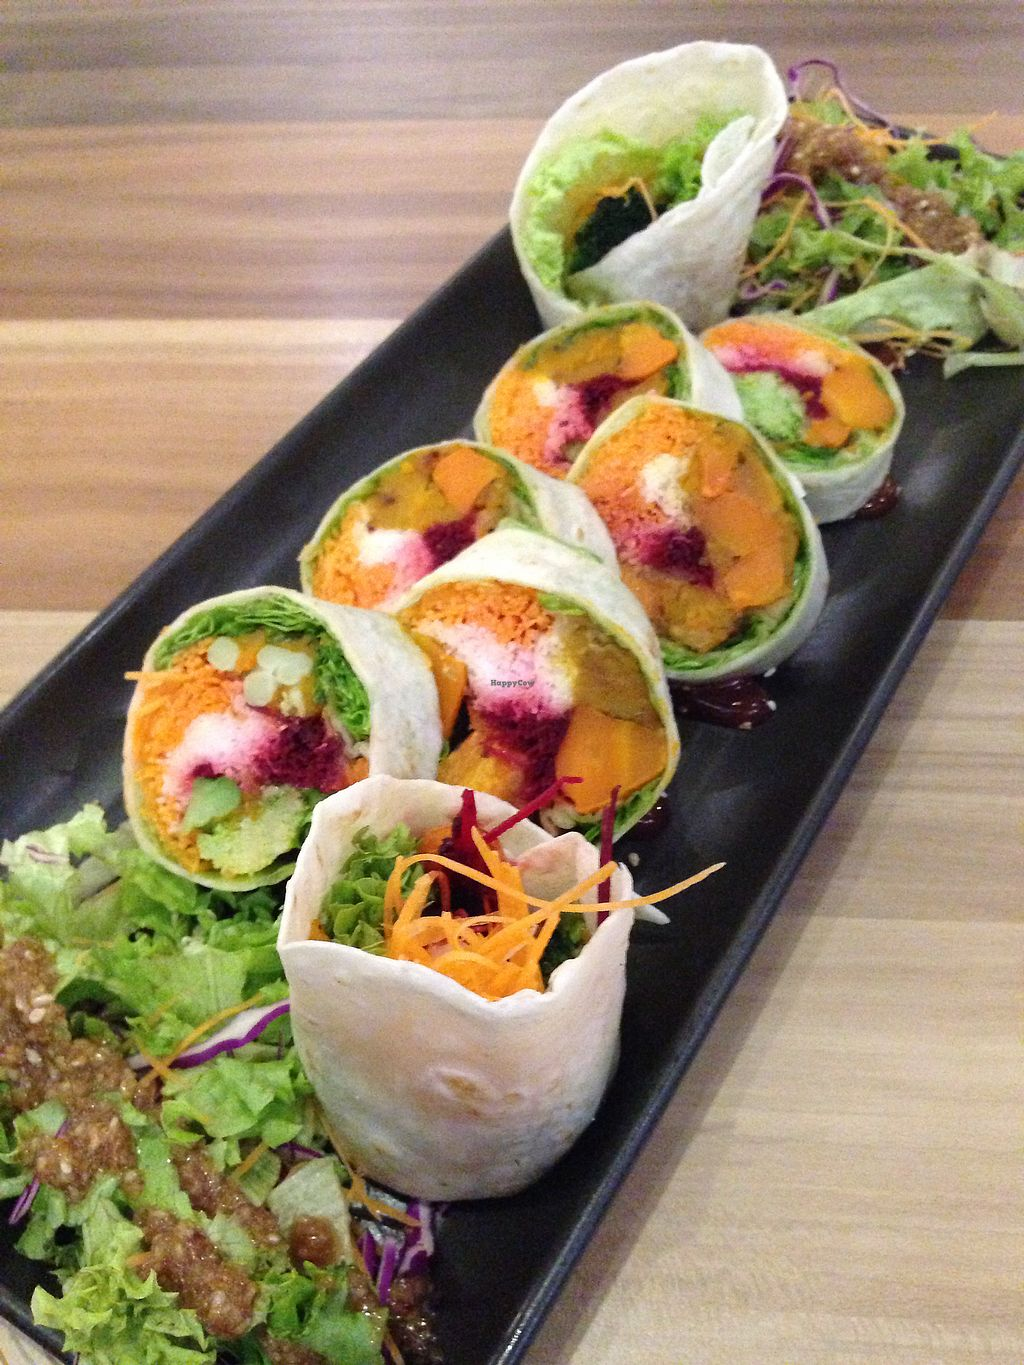 """Photo of Seeds Garden Bistro  by <a href=""""/members/profile/JeppoMAX"""">JeppoMAX</a> <br/>Veg roll <br/> March 26, 2018  - <a href='/contact/abuse/image/68249/376293'>Report</a>"""